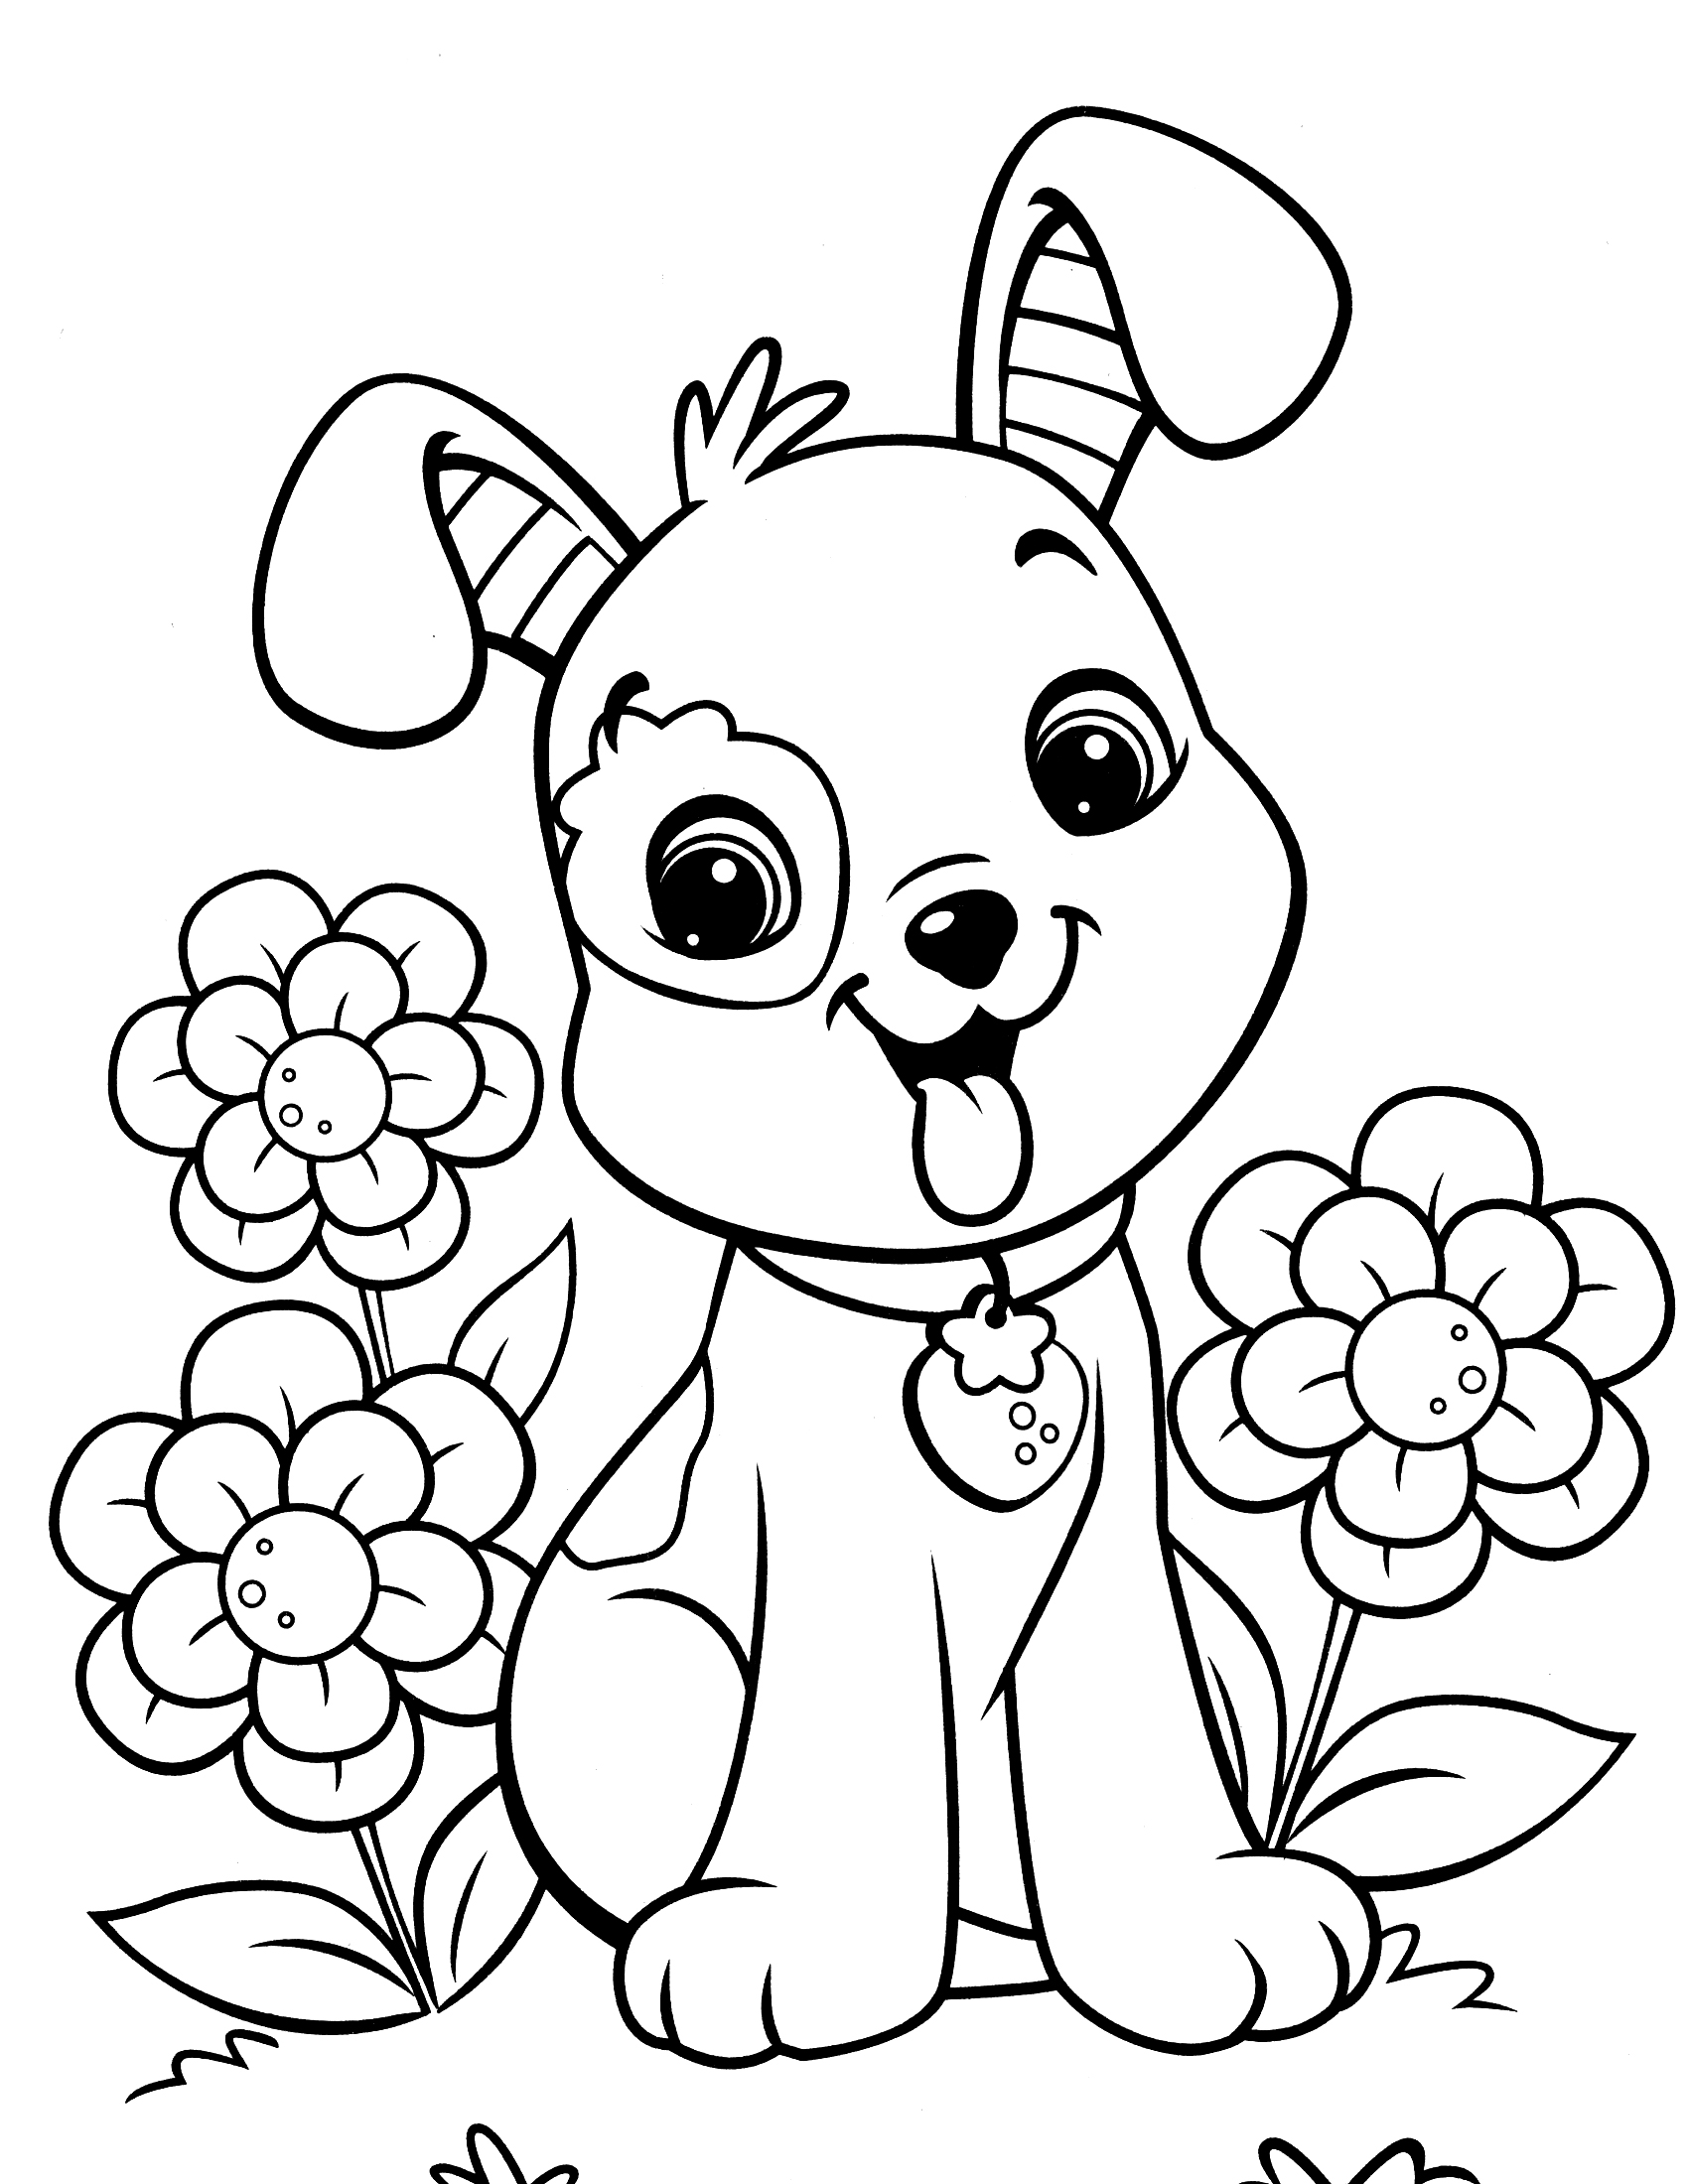 cute dog coloring pages top 30 free printable puppy coloring pages online dog cute coloring pages